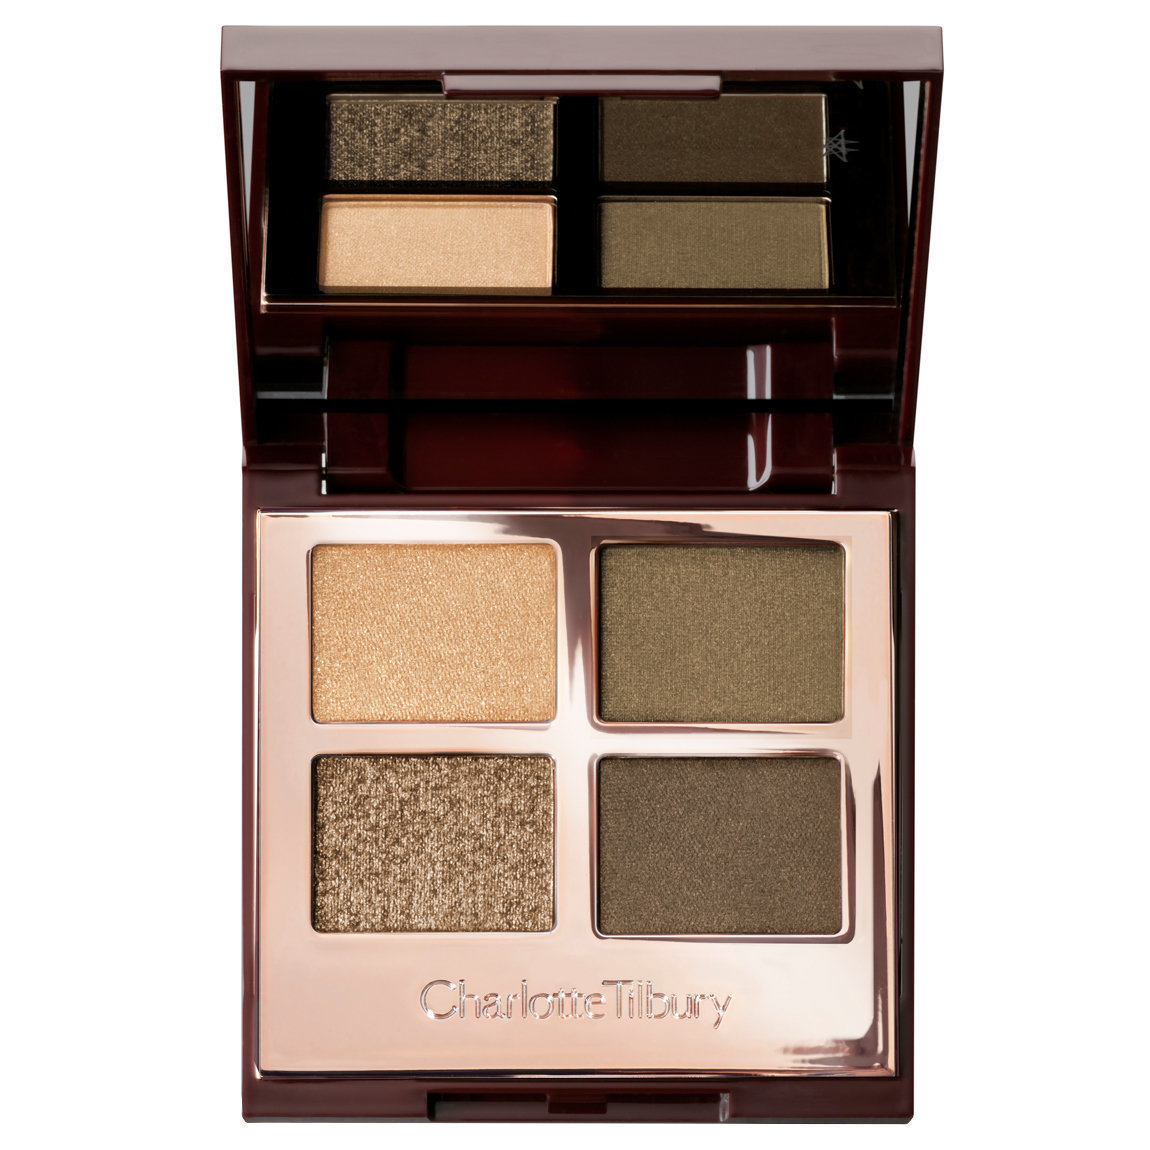 Charlotte Tilbury Luxury Palette Green Lights product swatch.